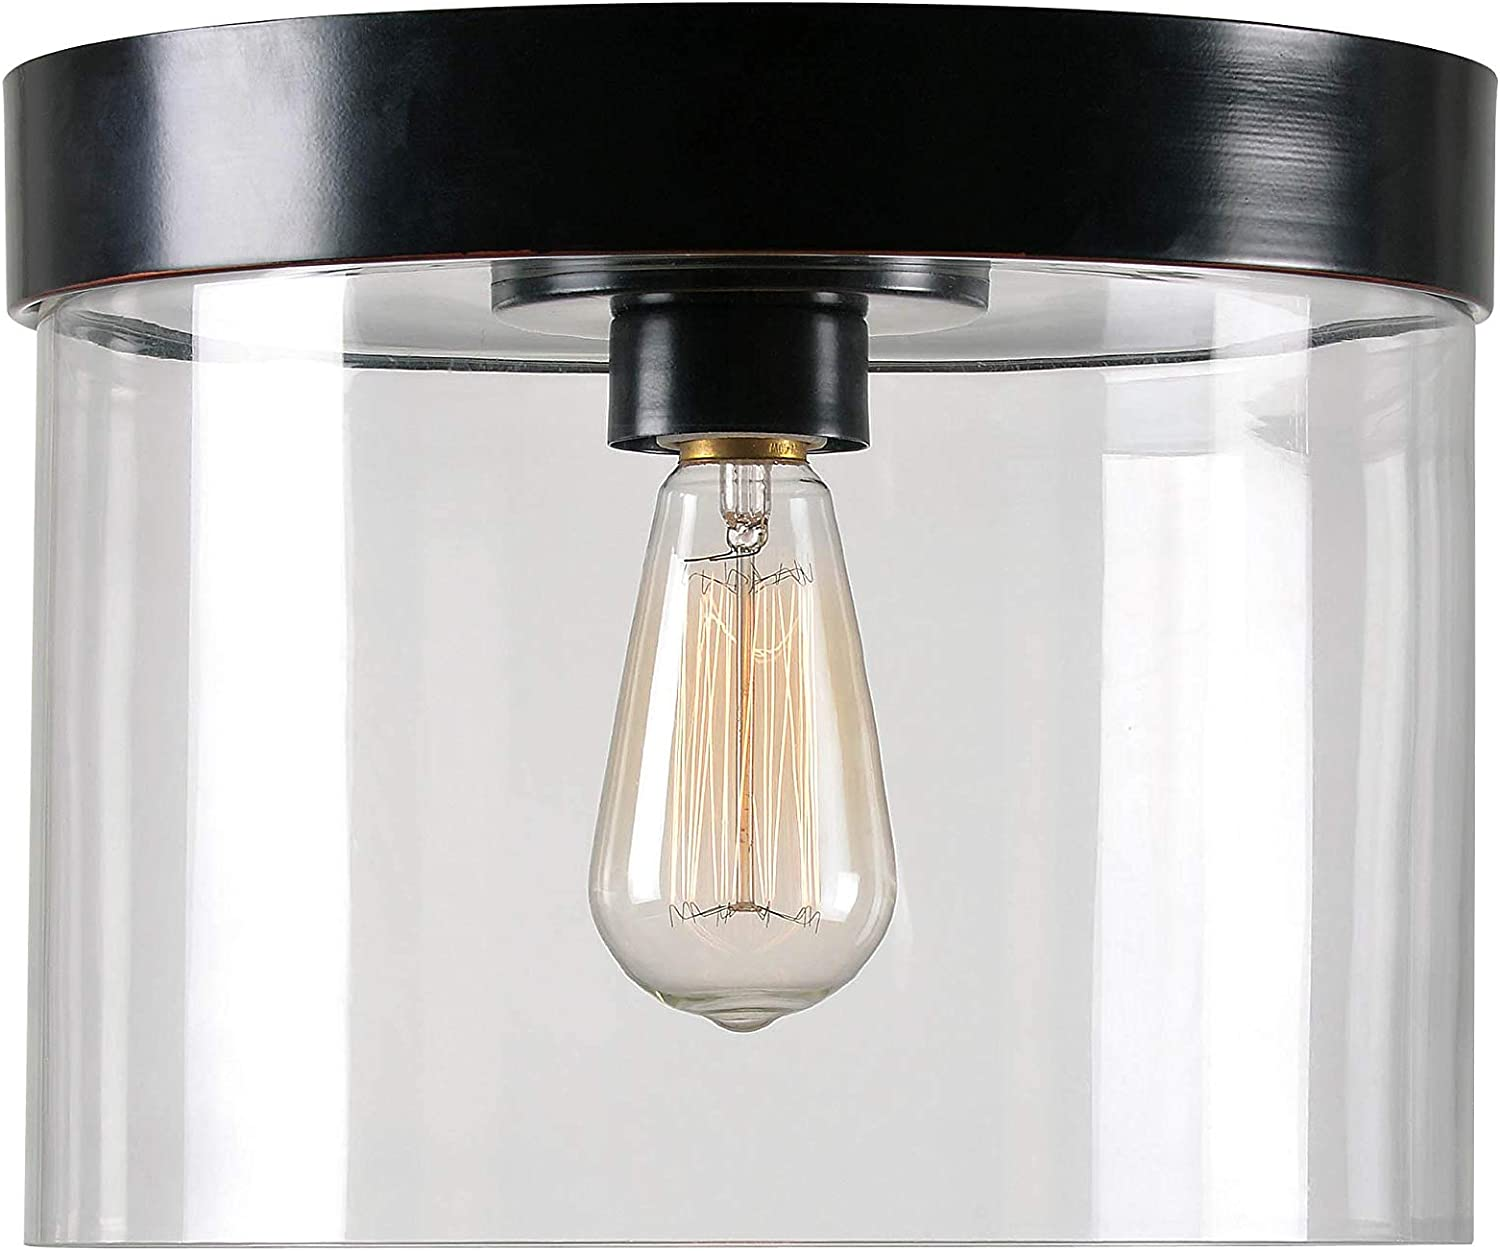 Kenroy Home Large Attention brand Flush Mount Kansas City Mall Pan R Oil Blackened Clear Glass